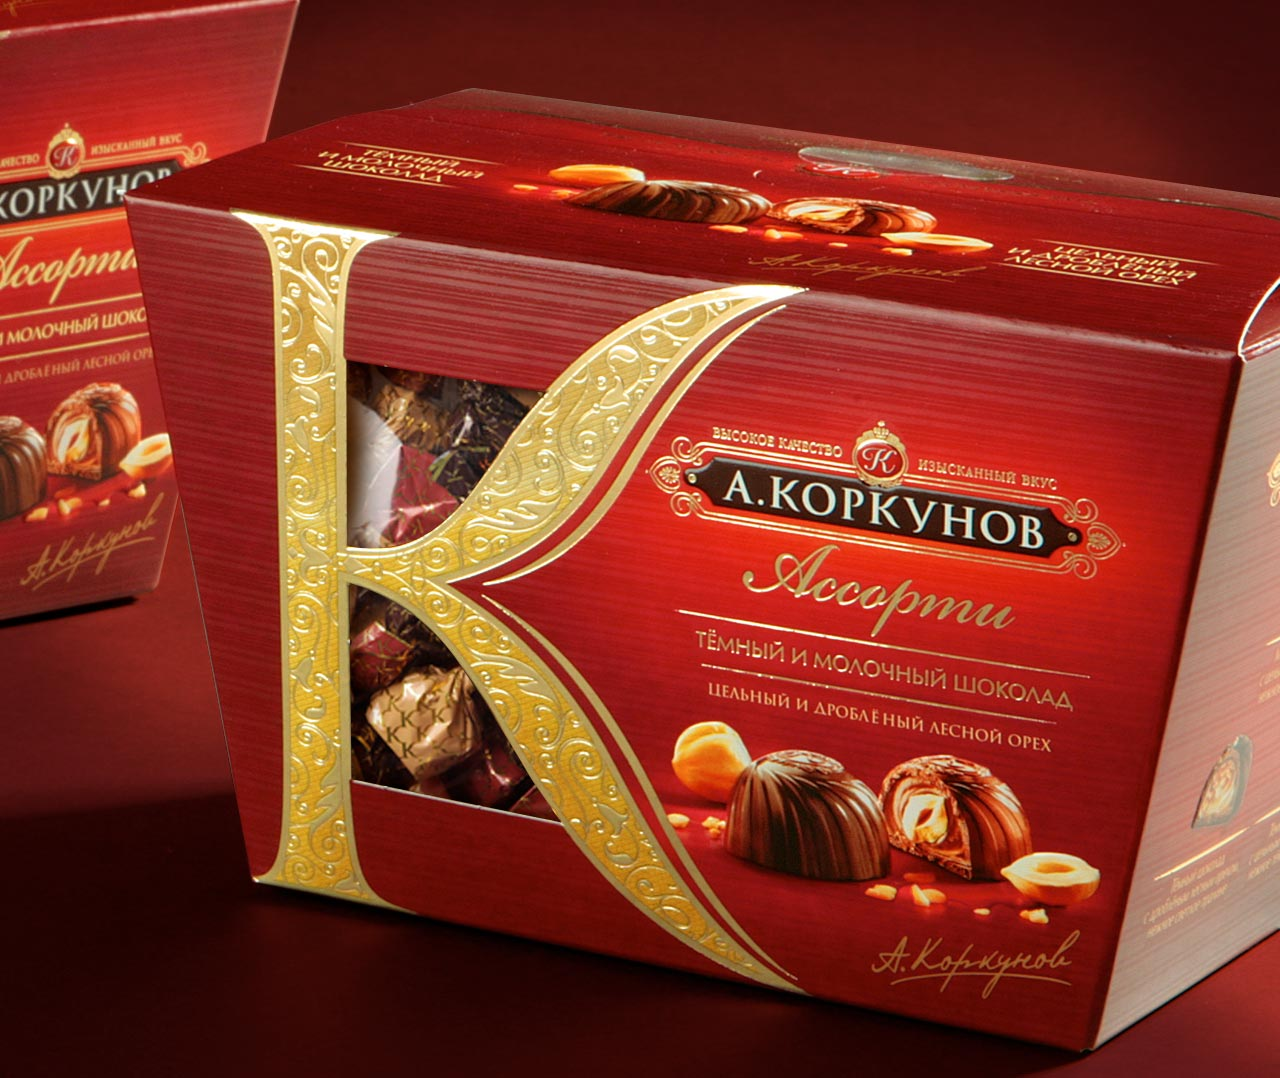 korkunov-packaging-detail-02.jpg